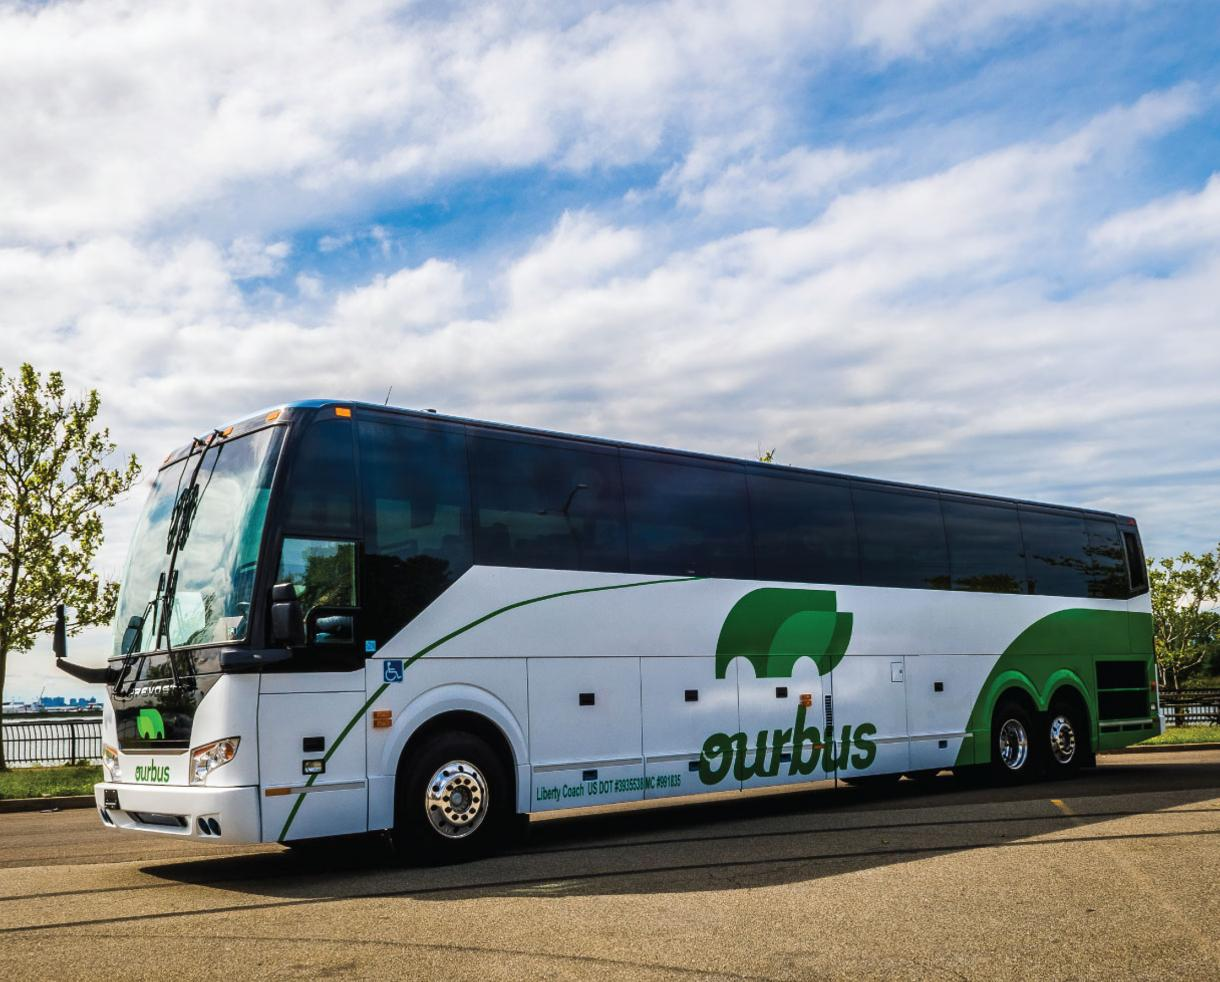 Weekday Roundtrip Bus Fare between Washington, DC and New York City on OurBus